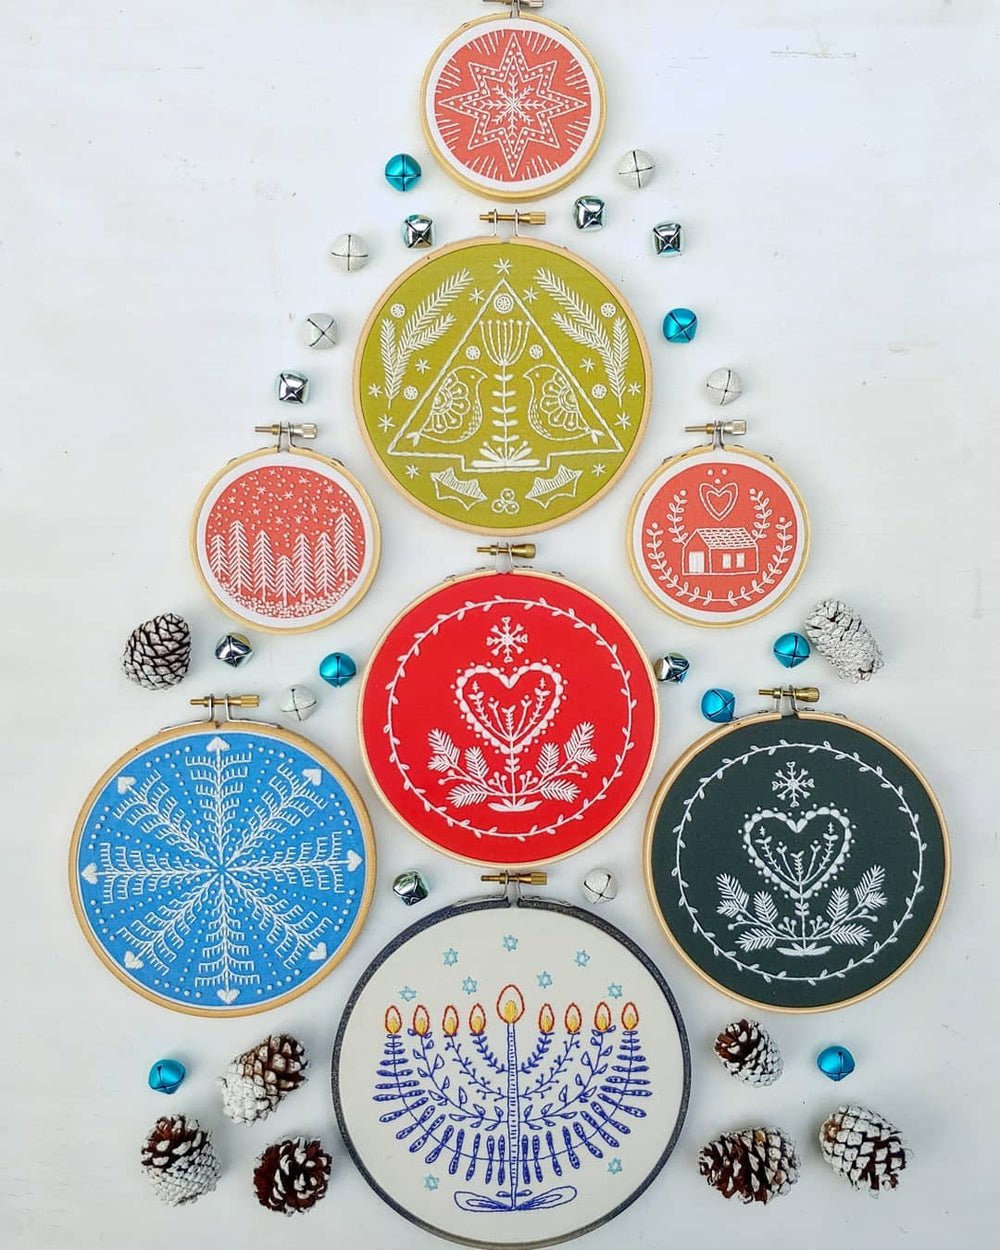 Festival of Lights Hanukkah Hand Embroidery Kit